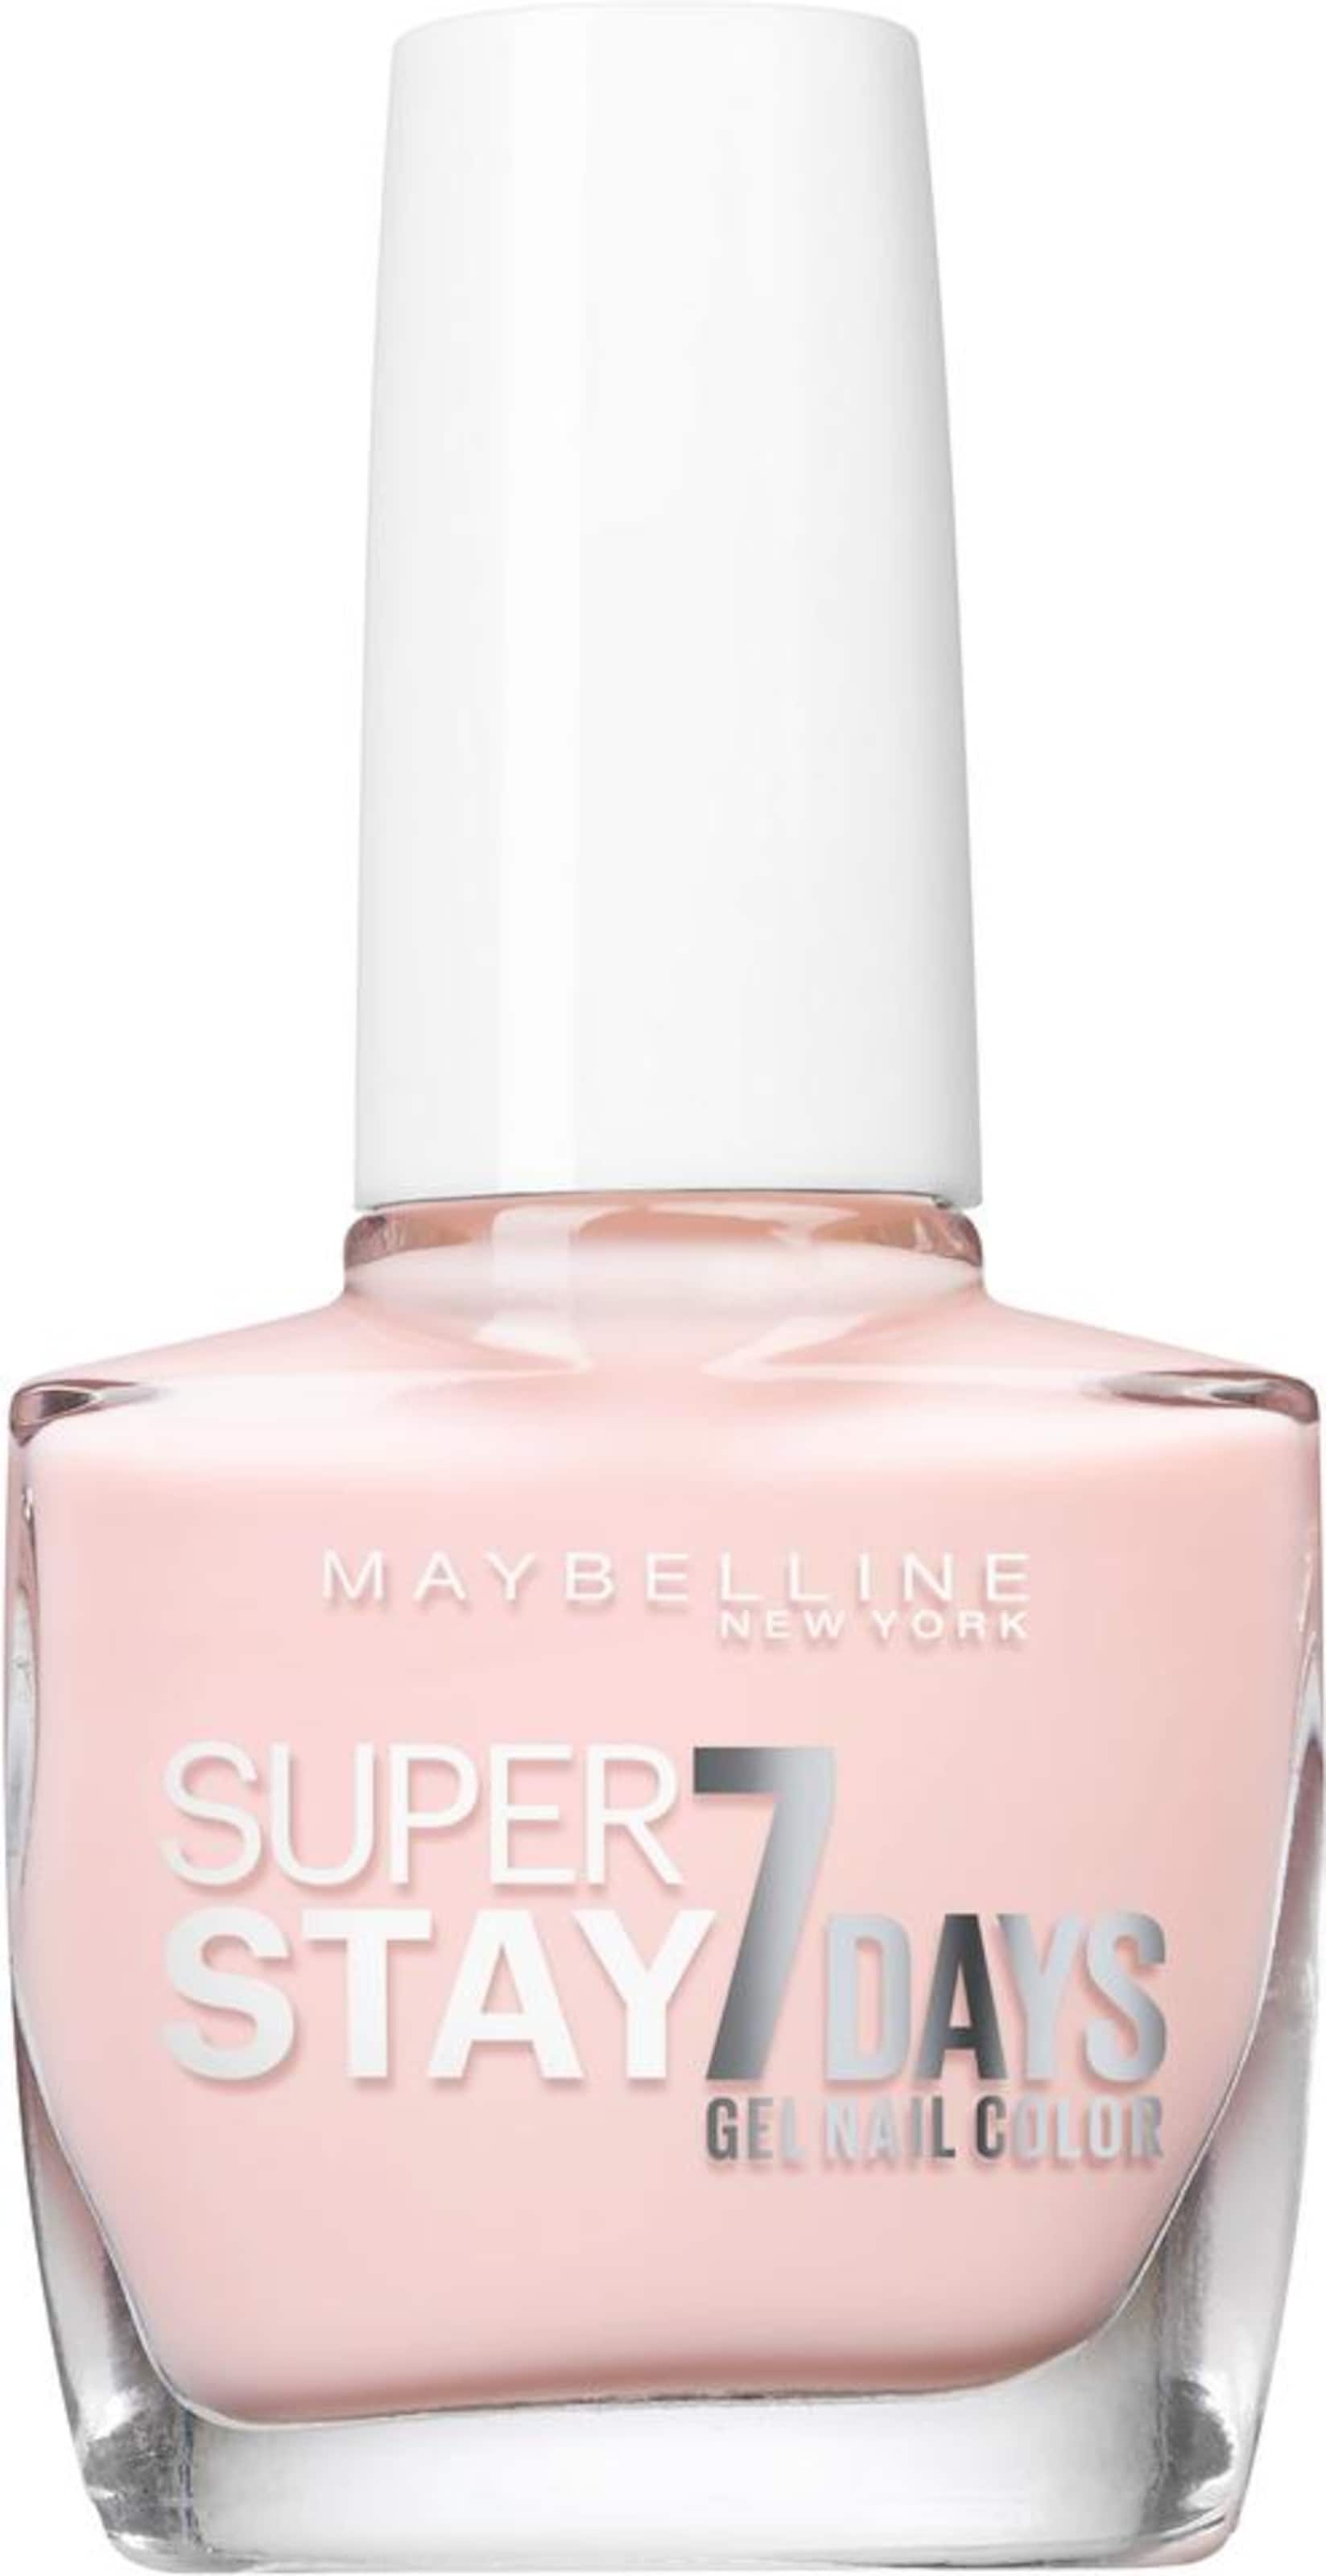 York Days Maybelline 7 'nagellack New Nagellack In Altrosa Superstay ' dEexroWQCB